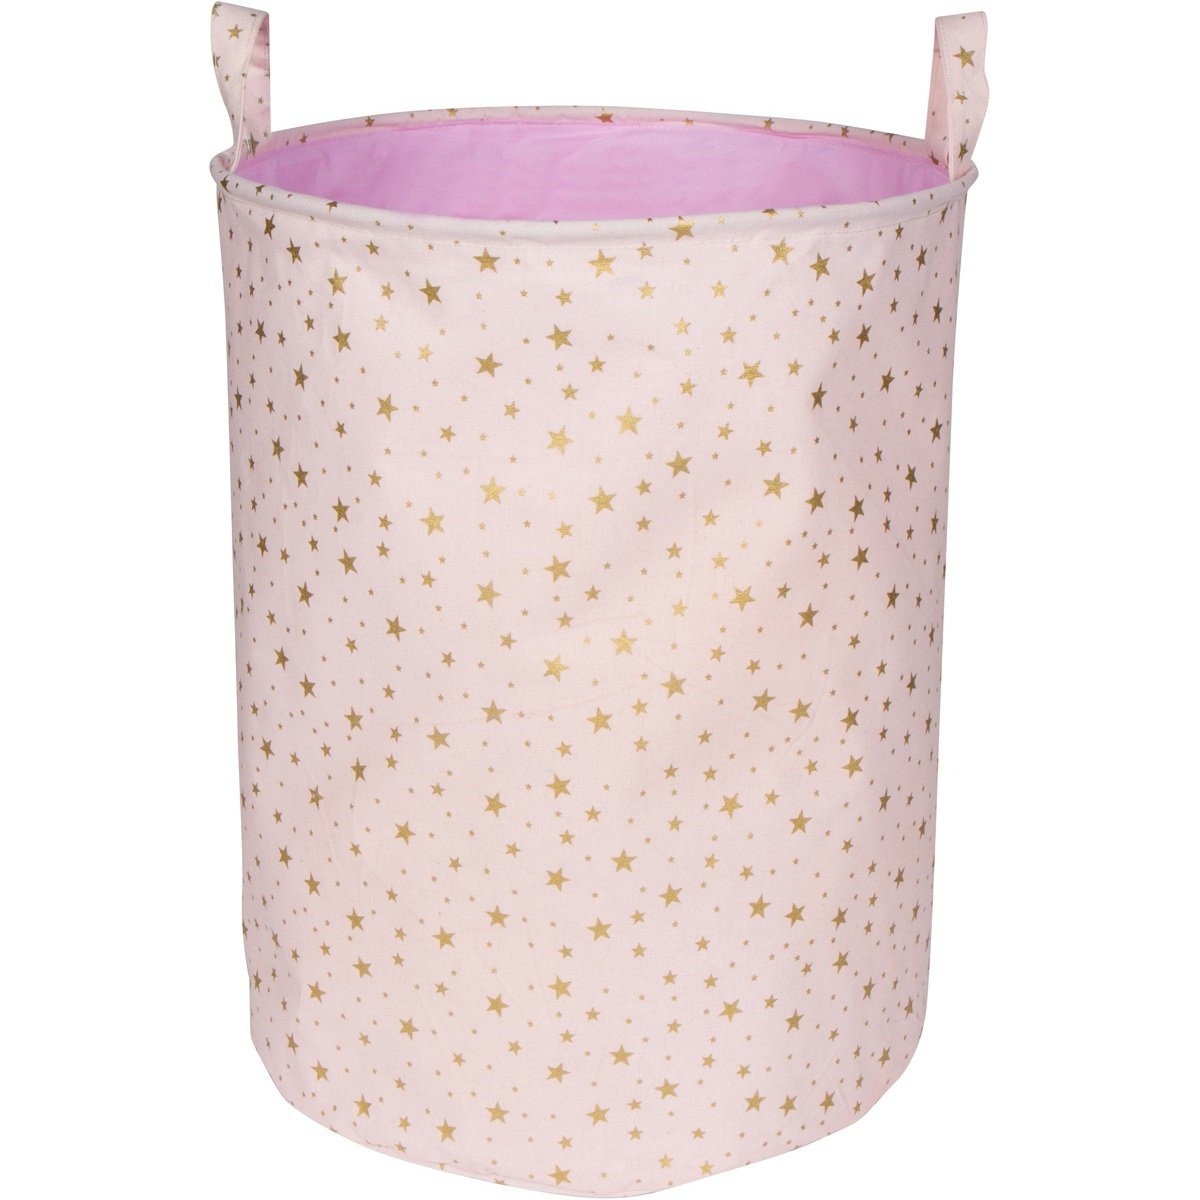 LuxCoco Blush Pink Storage Basket / Laundry Hamper with Shimmery Gold Star Pattern | 19.6